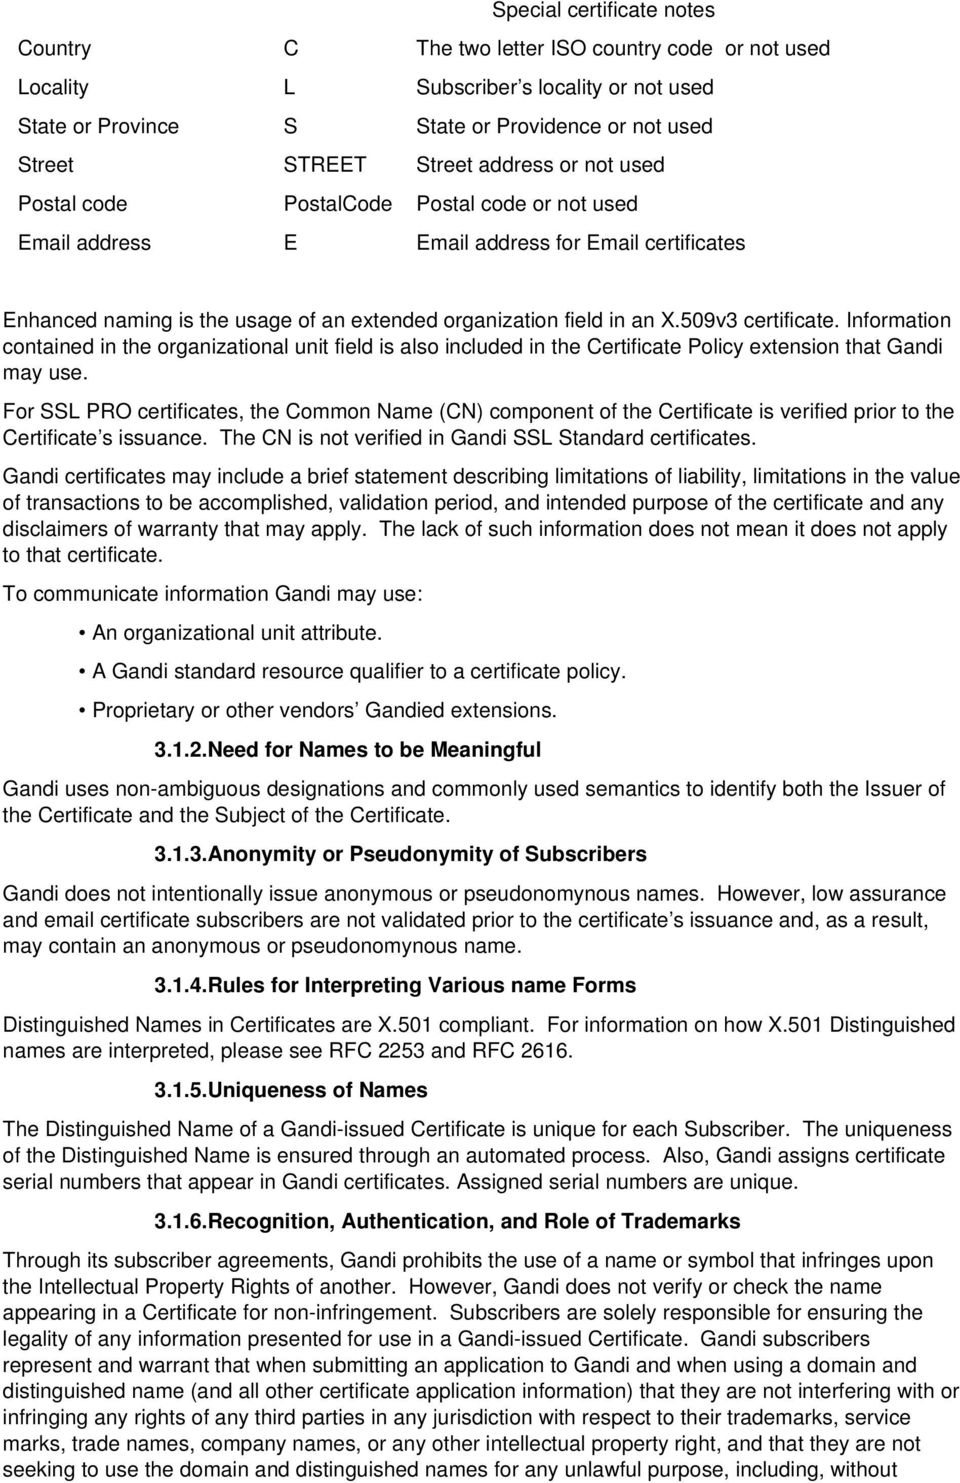 509v3 certificate. Information contained in the organizational unit field is also included in the Certificate Policy extension that Gandi may use.